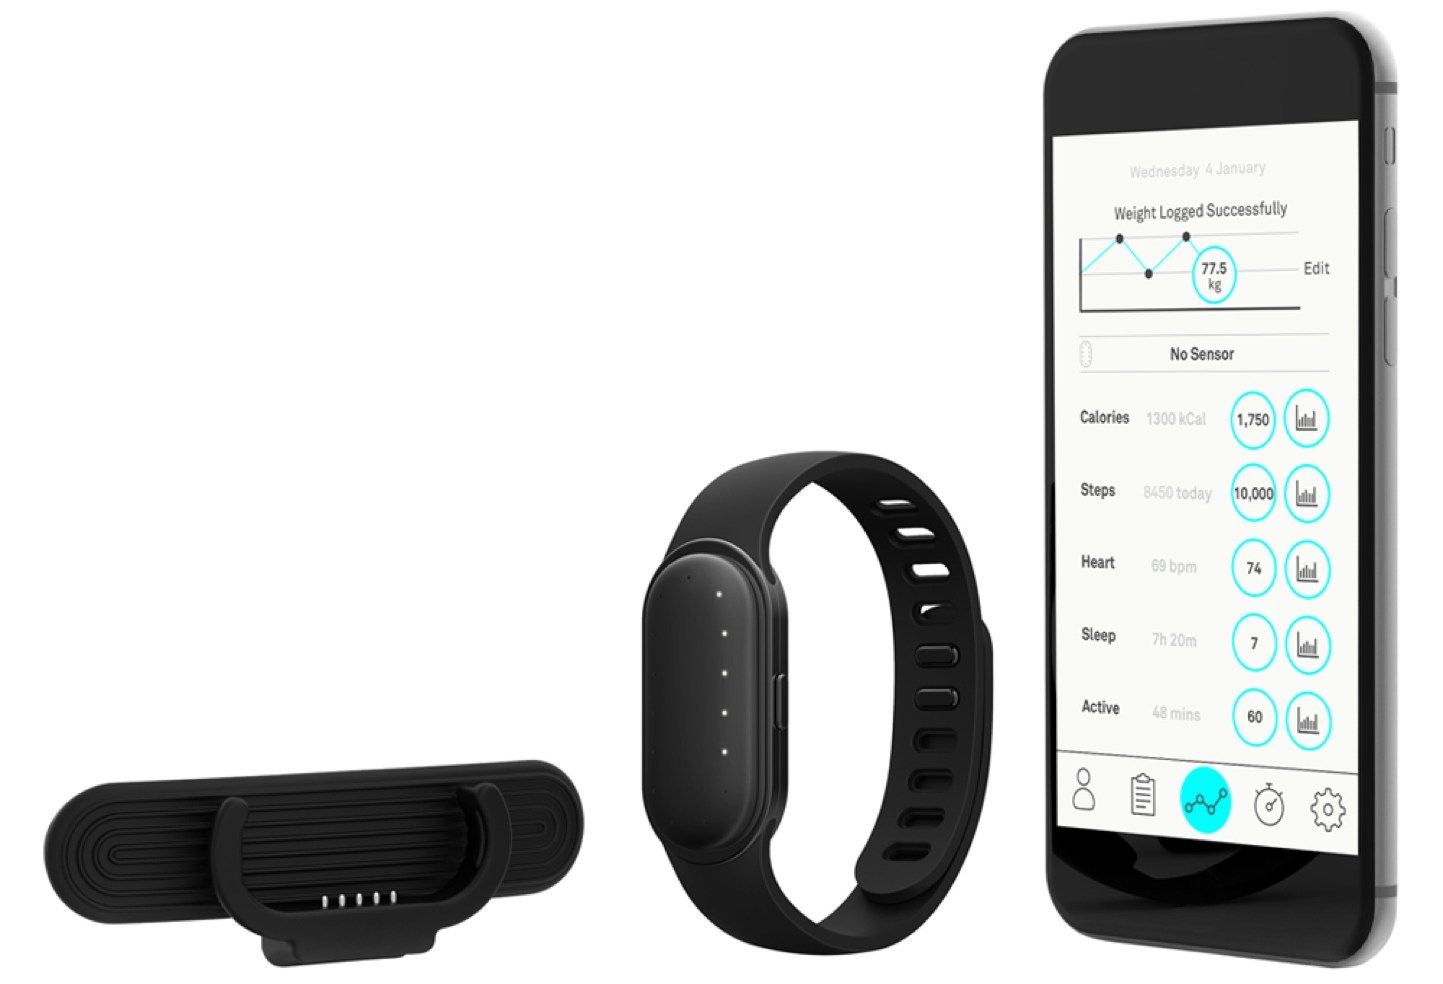 The new Onitor Track, a weight loss program and wearable for the age of data.